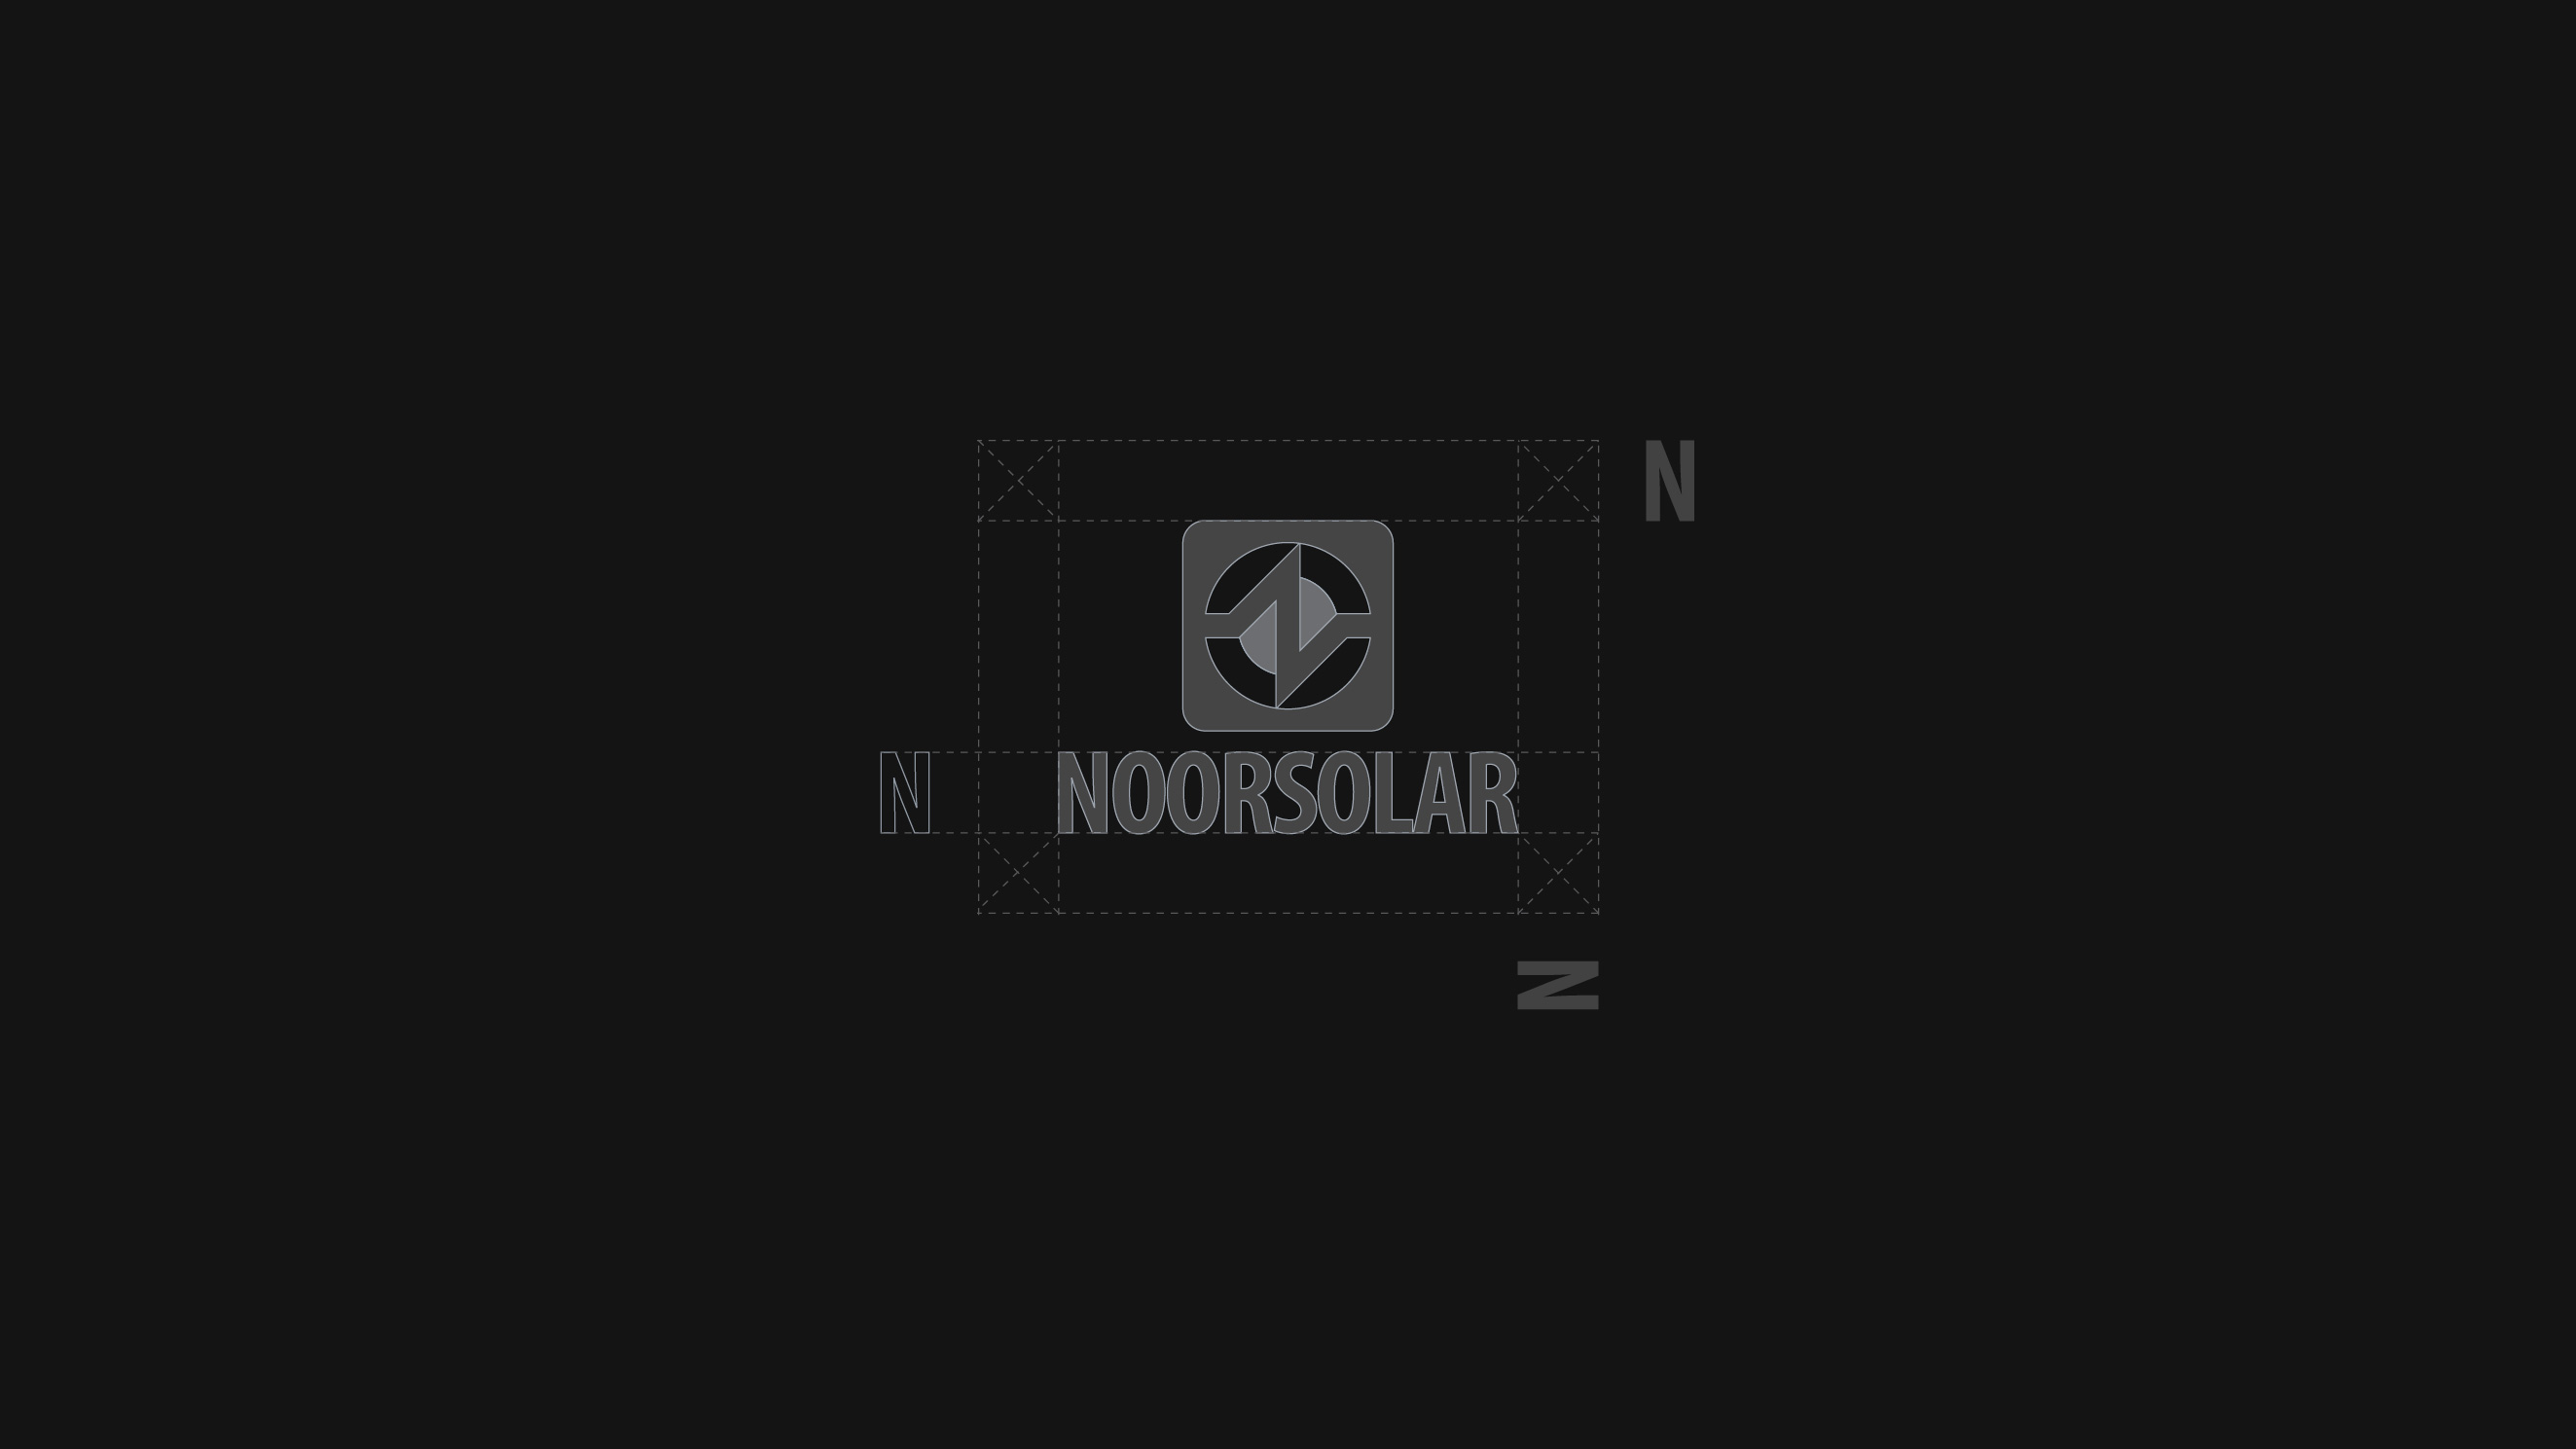 NOORSOLAR Design / Designed by Ben Biazar